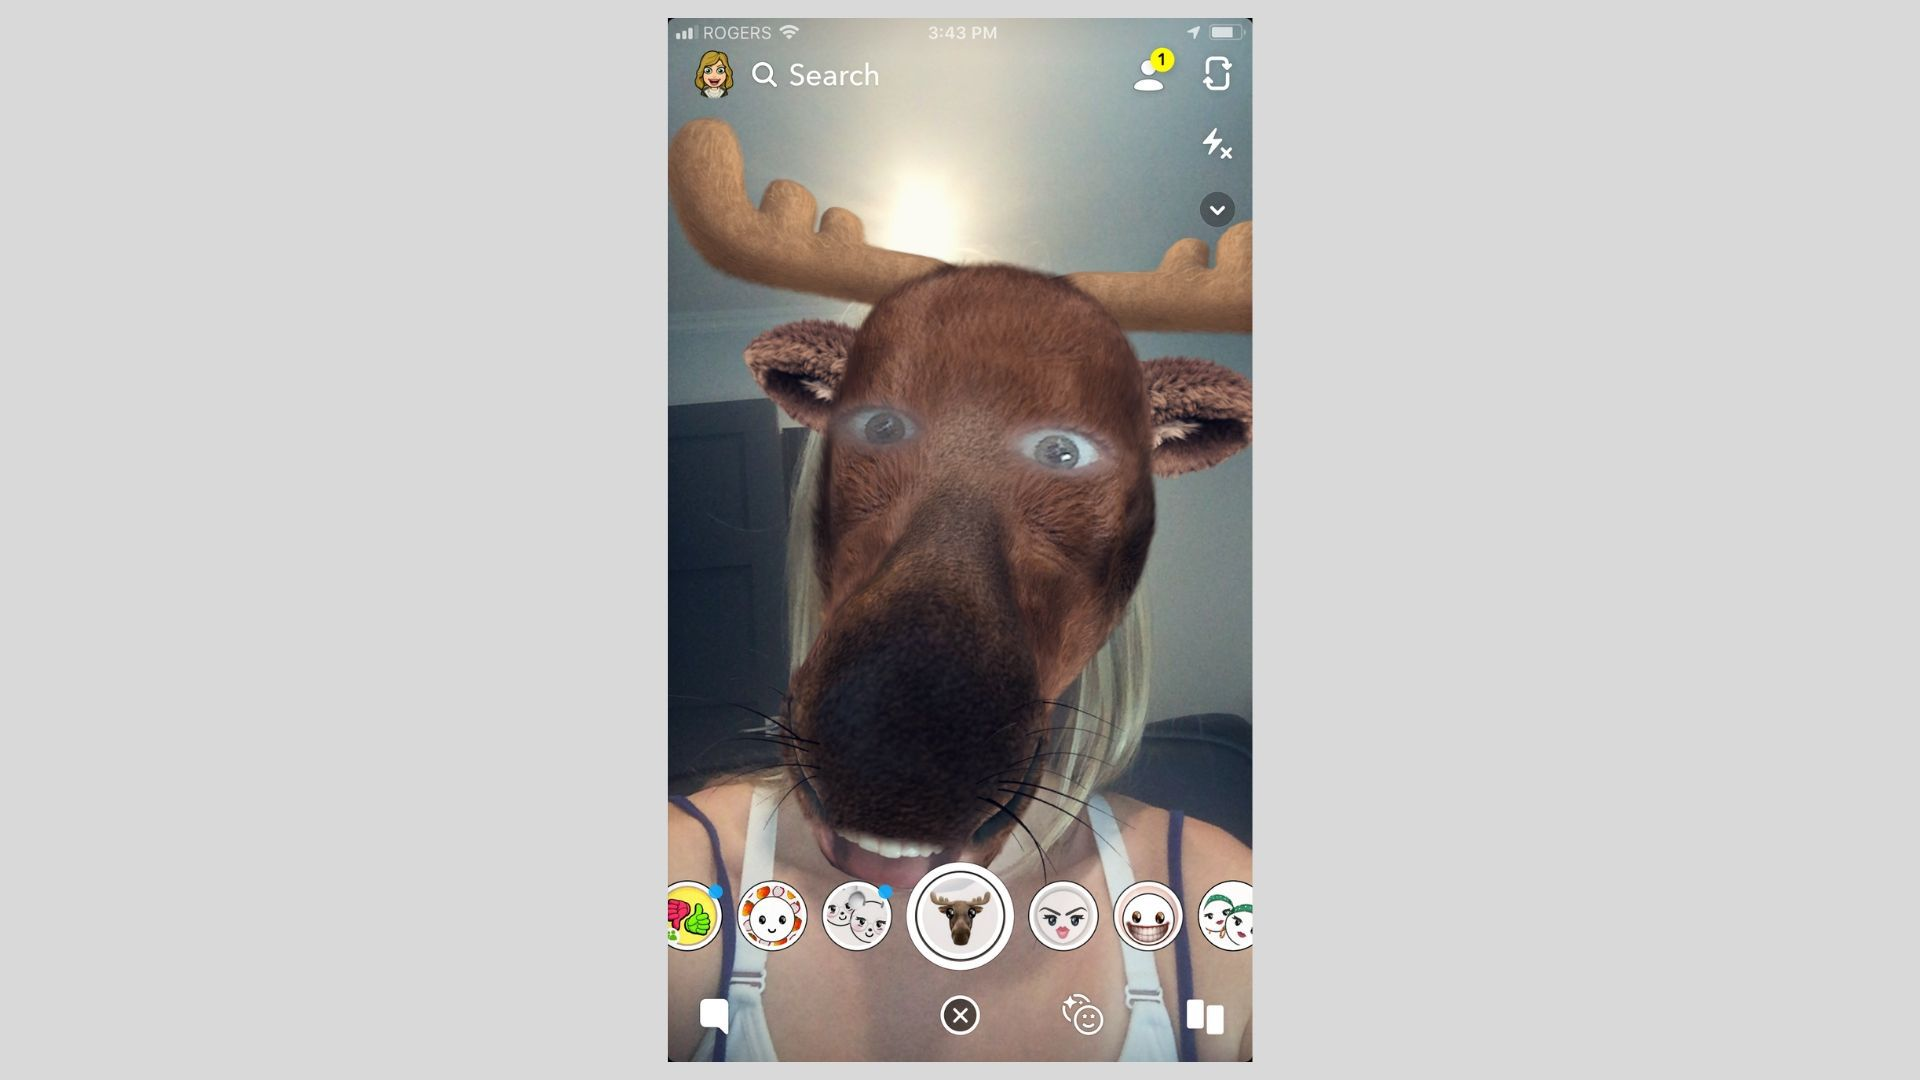 Send Crazy Selfies to Your Friends on Snapchat With Lenses